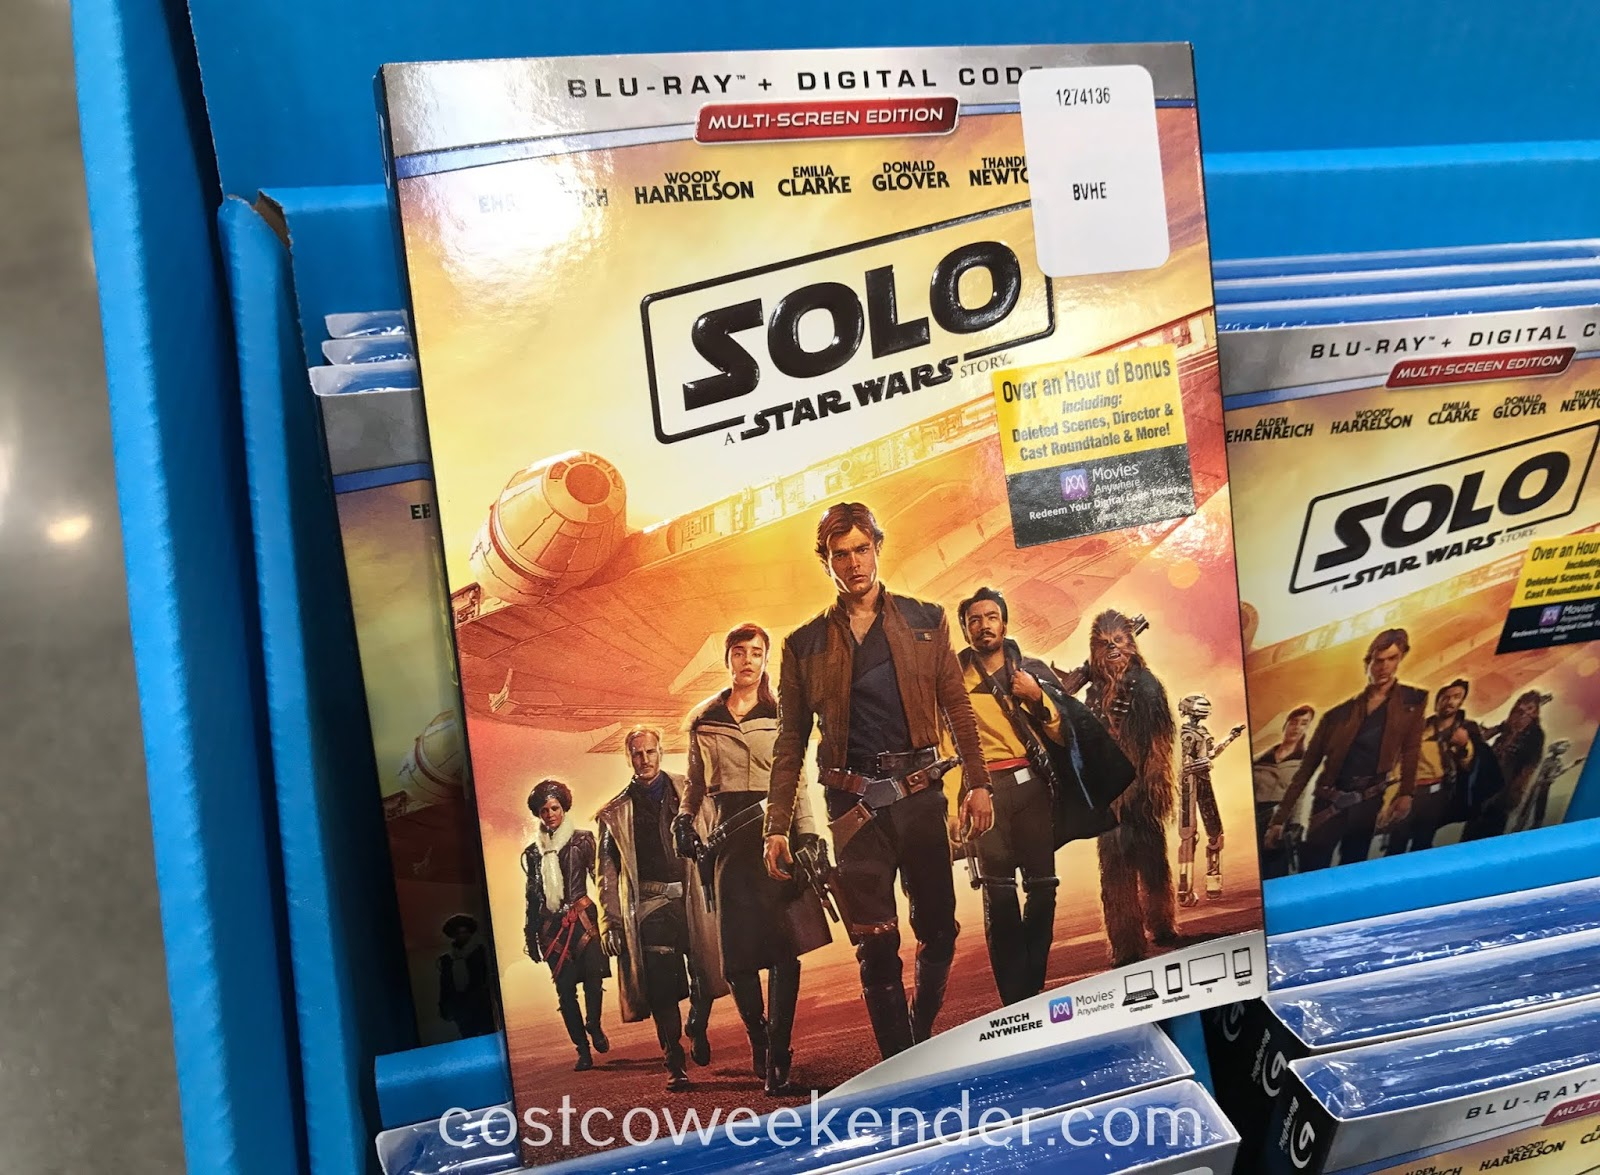 Enjoy watching how the story of Han Solo and the Millenium Falcon all started with the Solo: A Star Wars Story Blu-ray